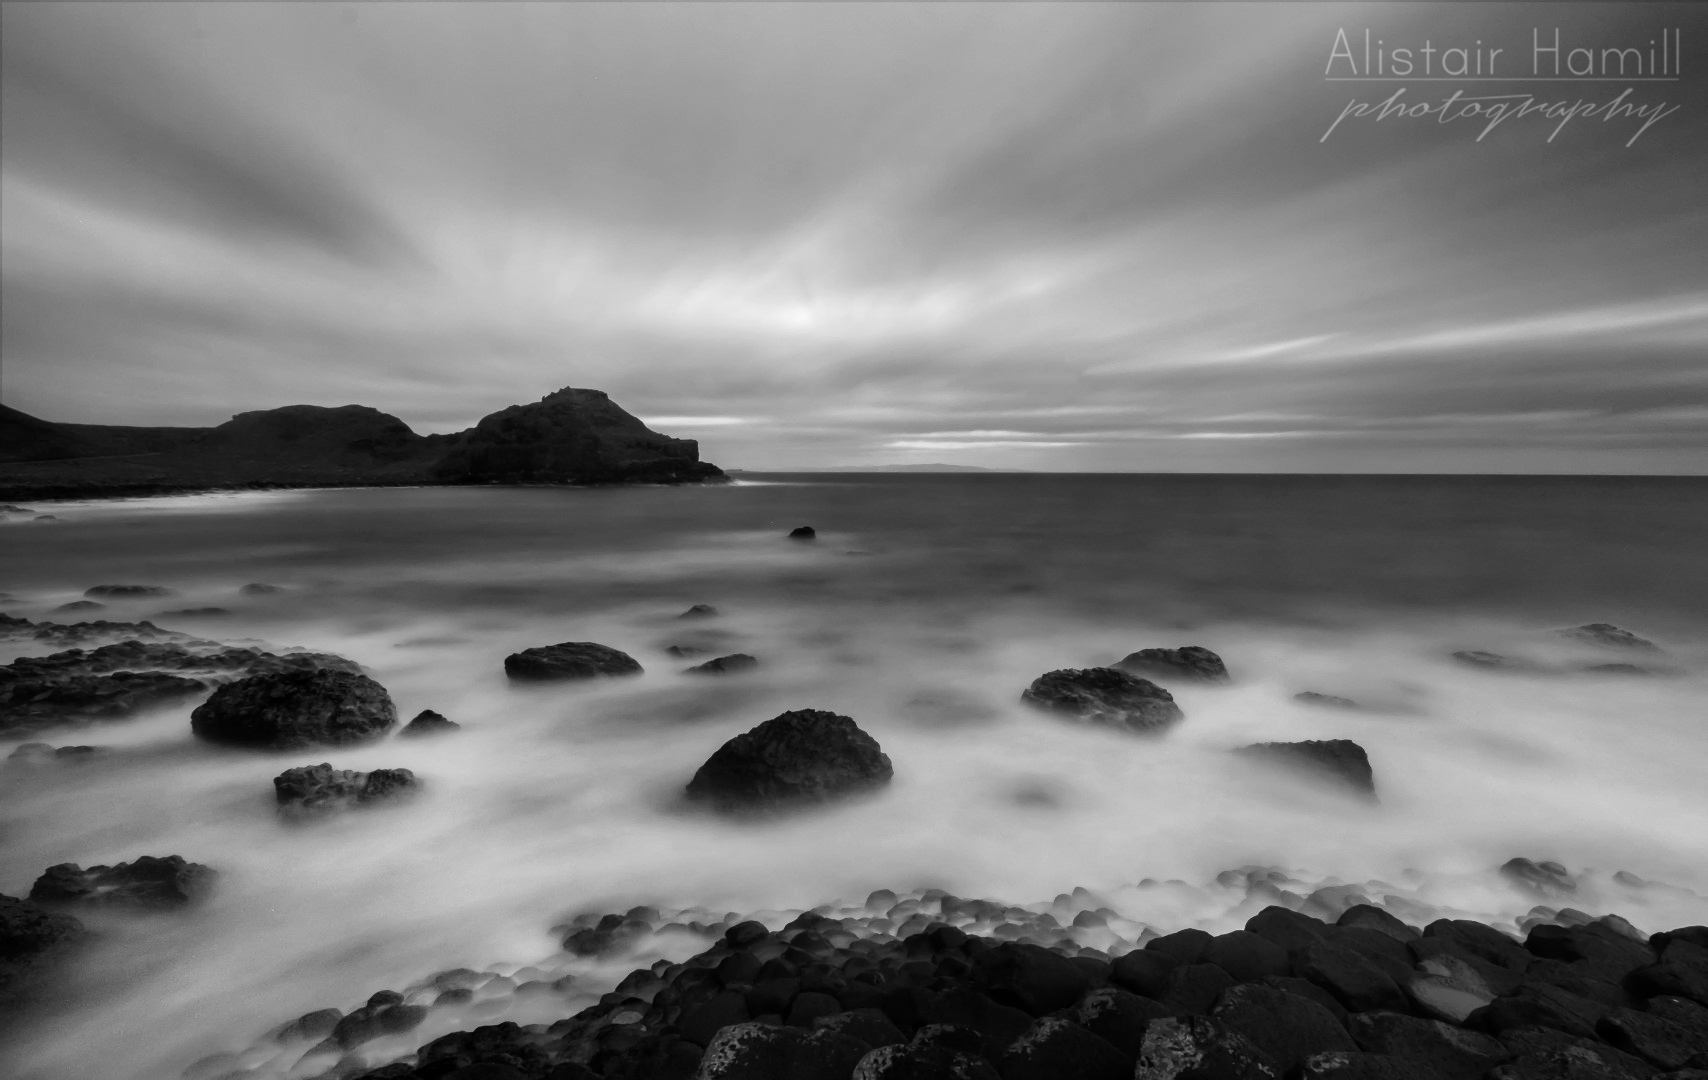 f/8, 170 seconds, 10mm